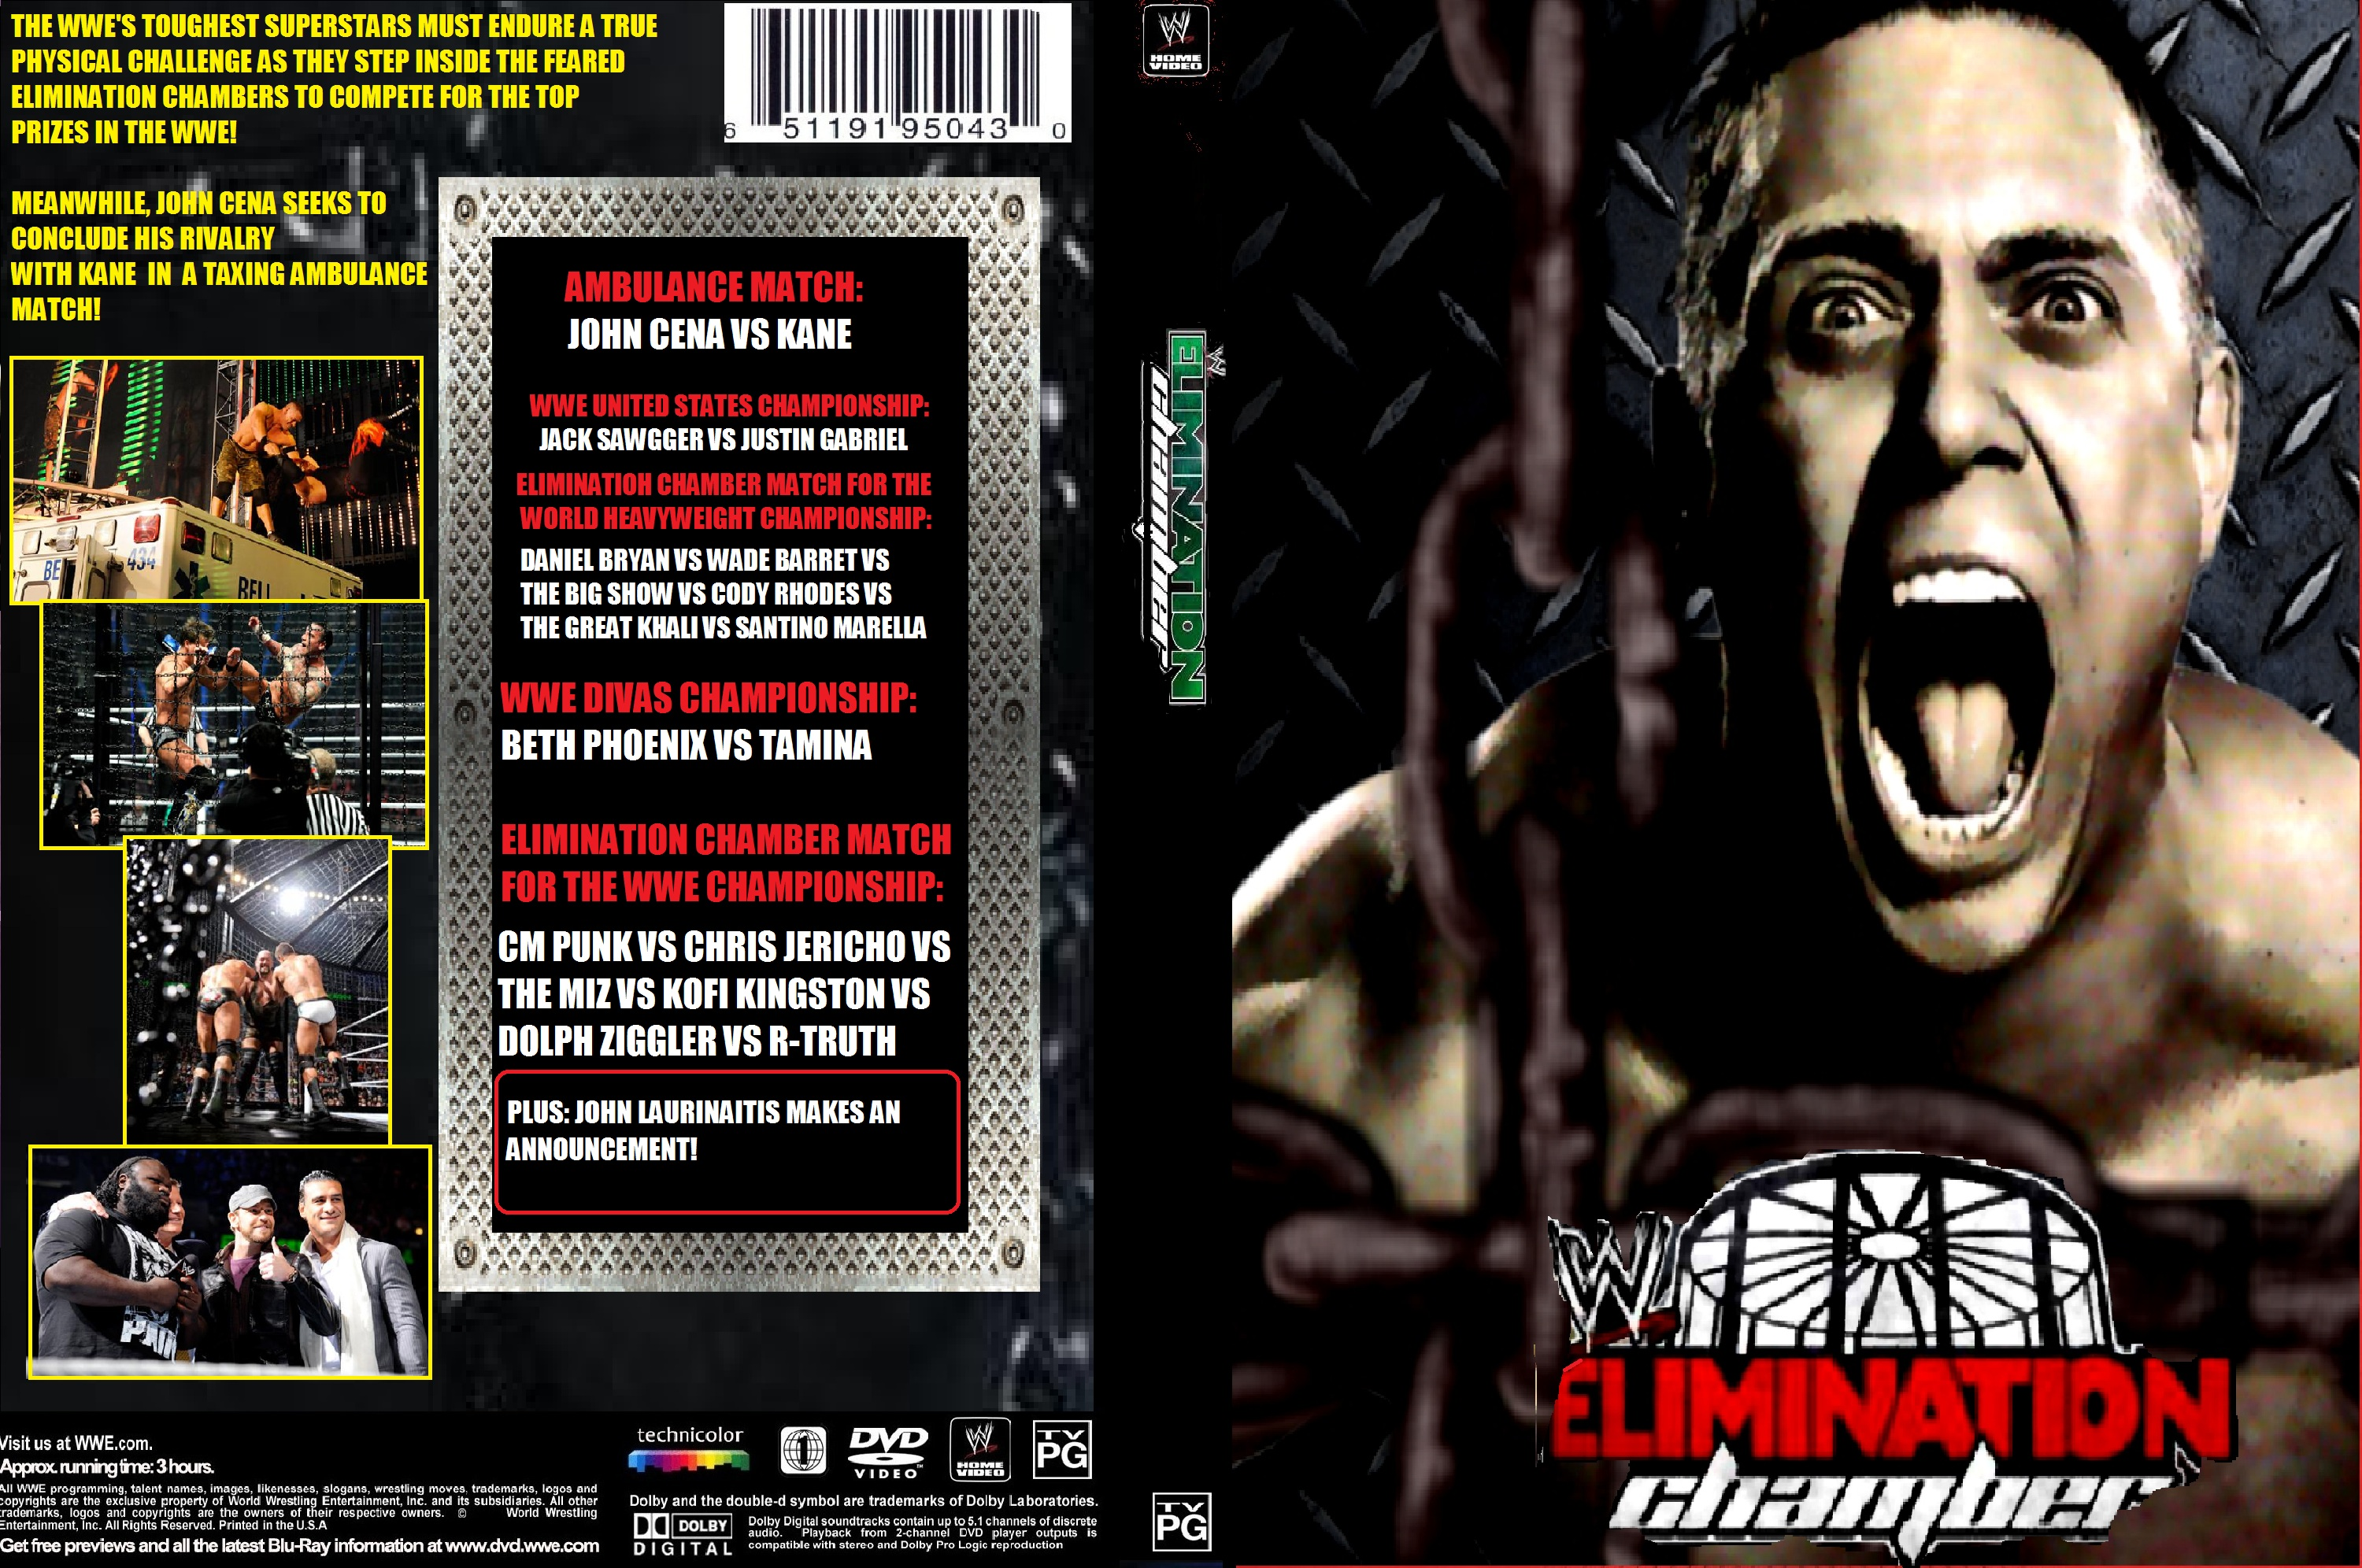 WWE Elimination Chamber 2012 by ZT4 3000x1992